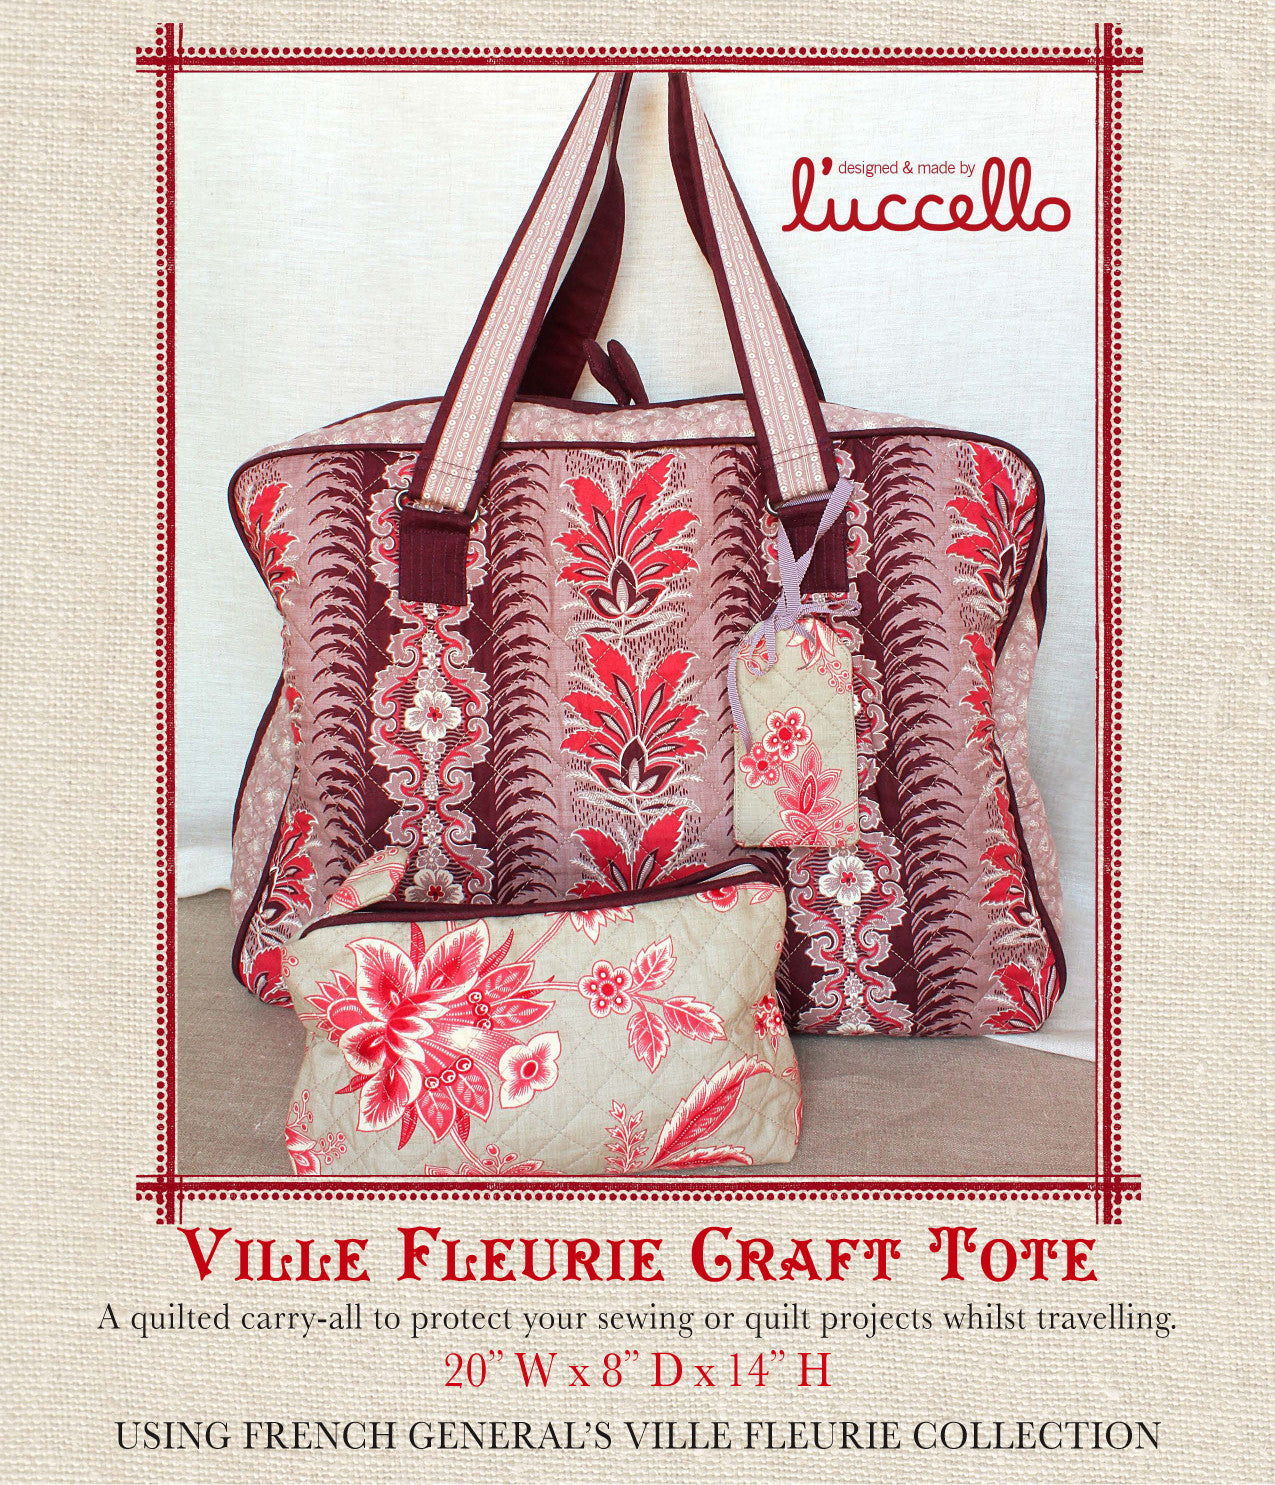 Ville Fleurie - Craft Tote